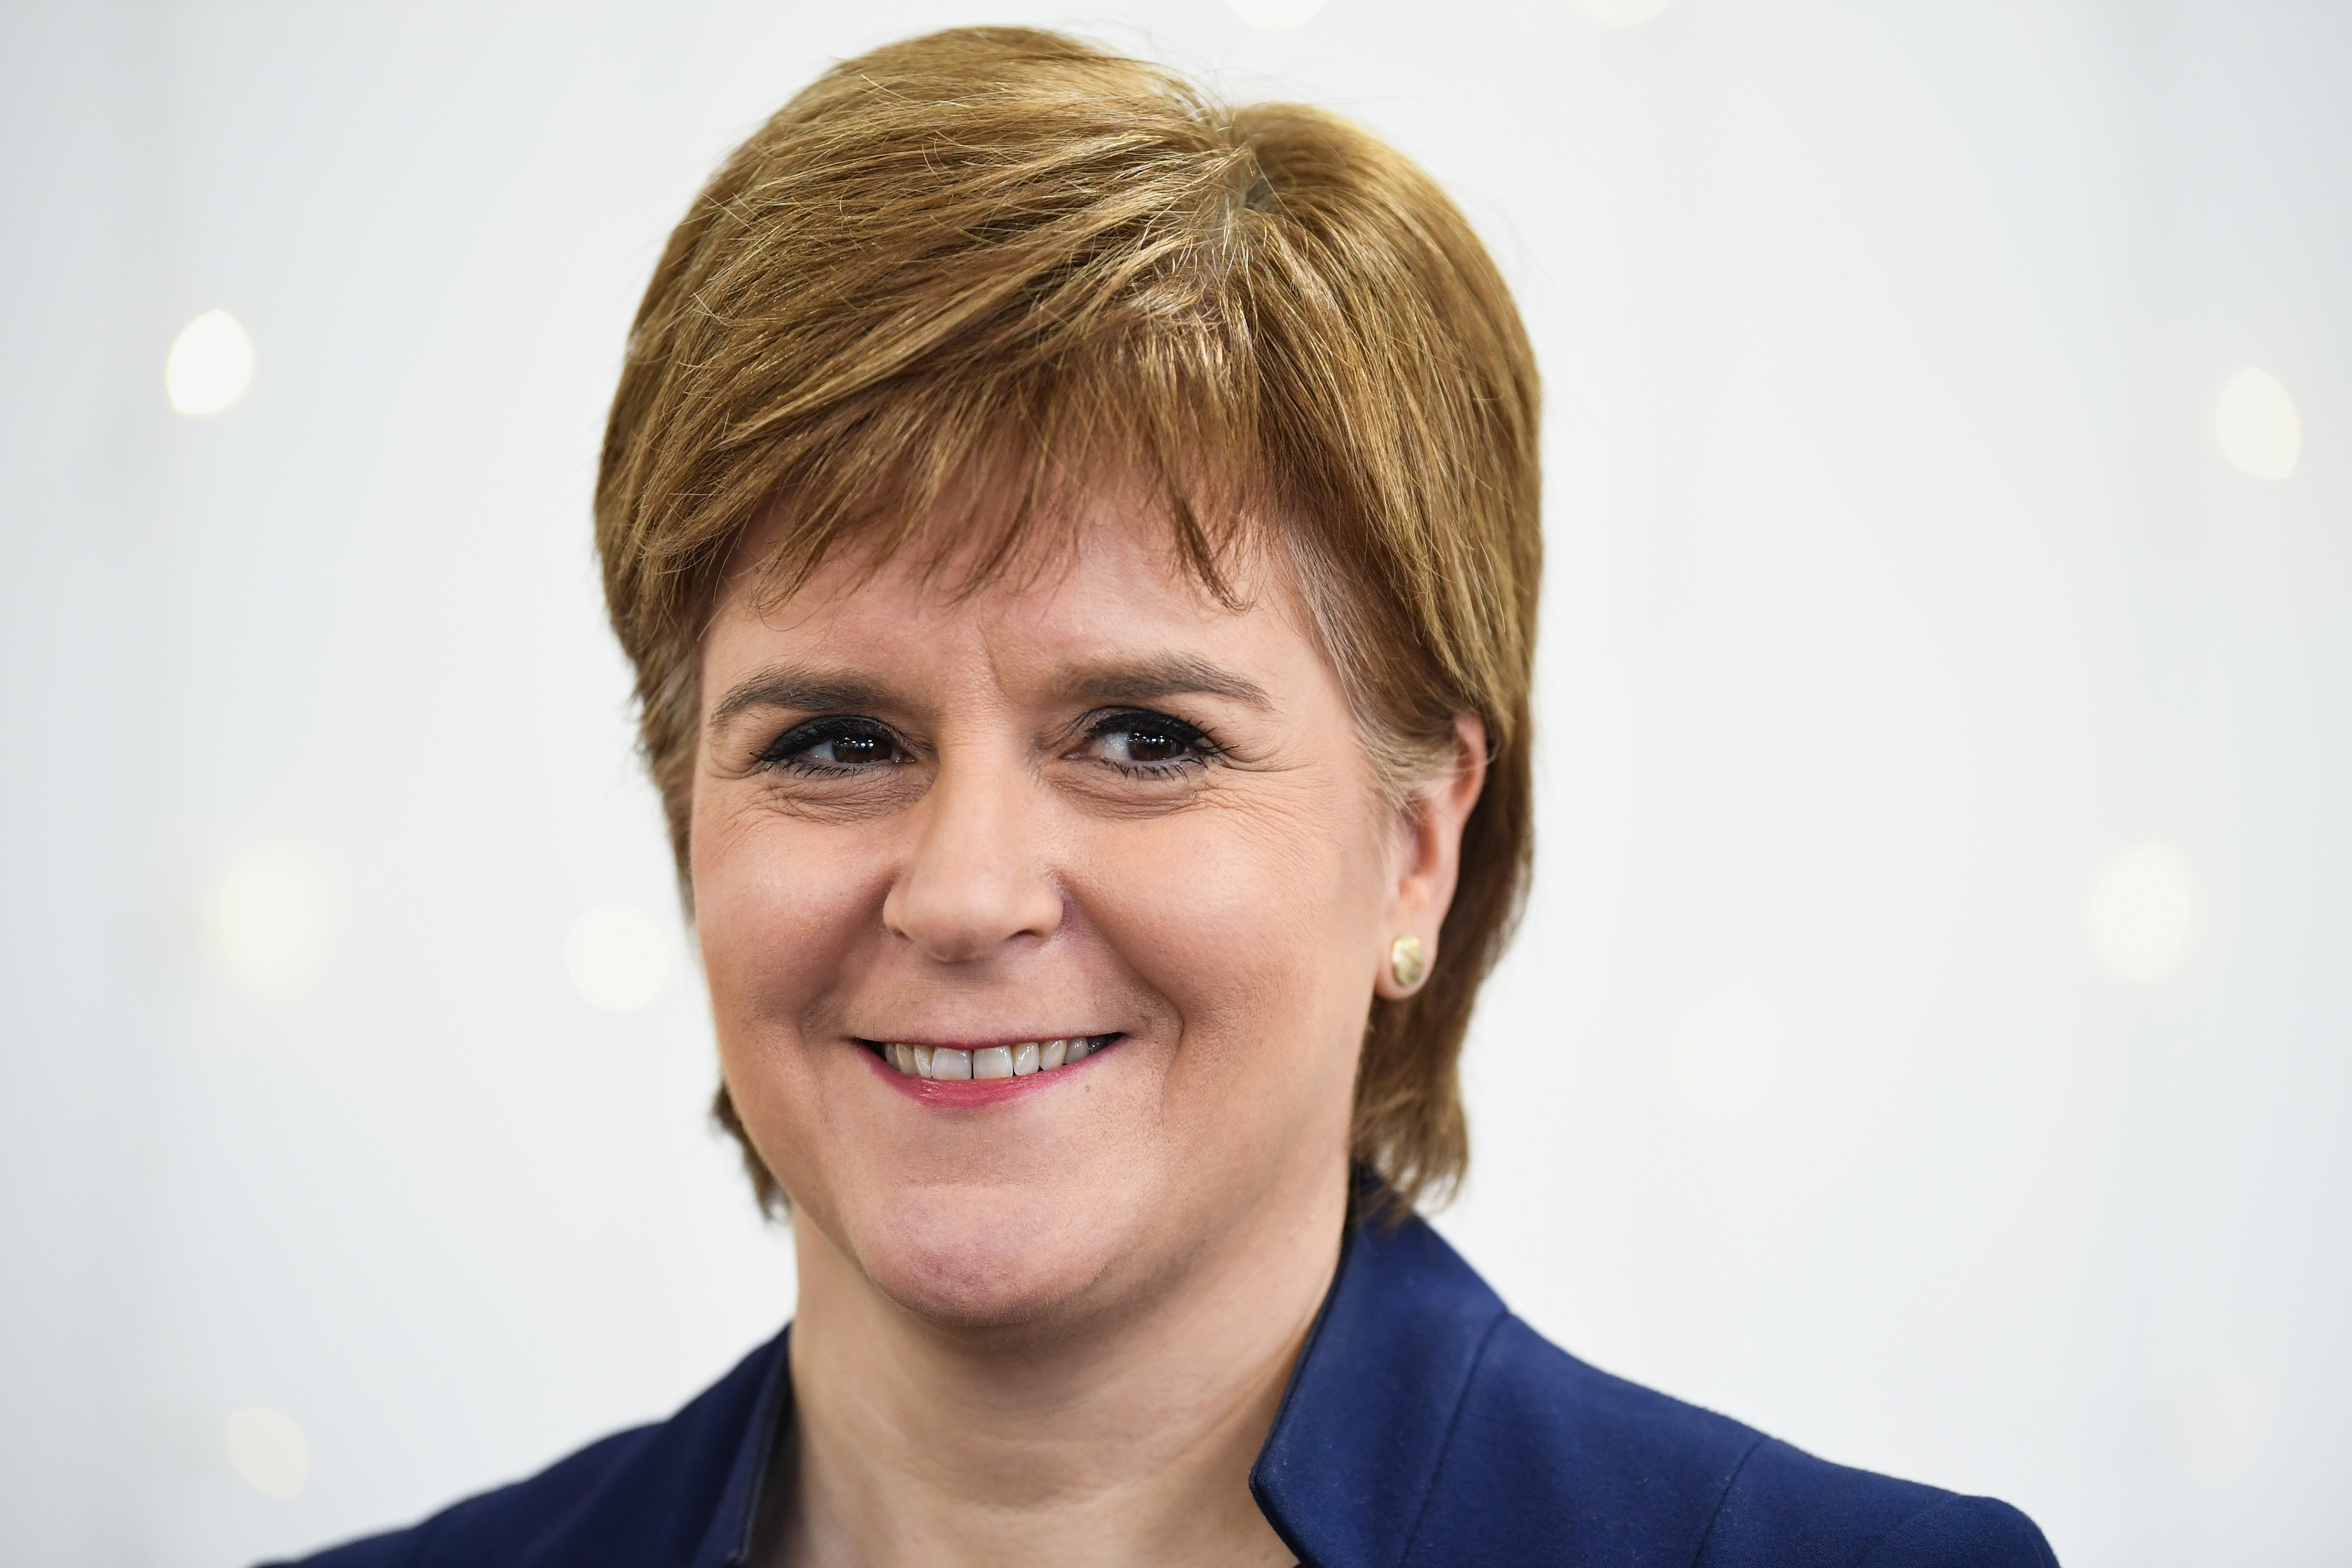 Scottish First Minister Nicola Sturgeon (Jeff J Mitchell - WPA Pool/Getty Images)